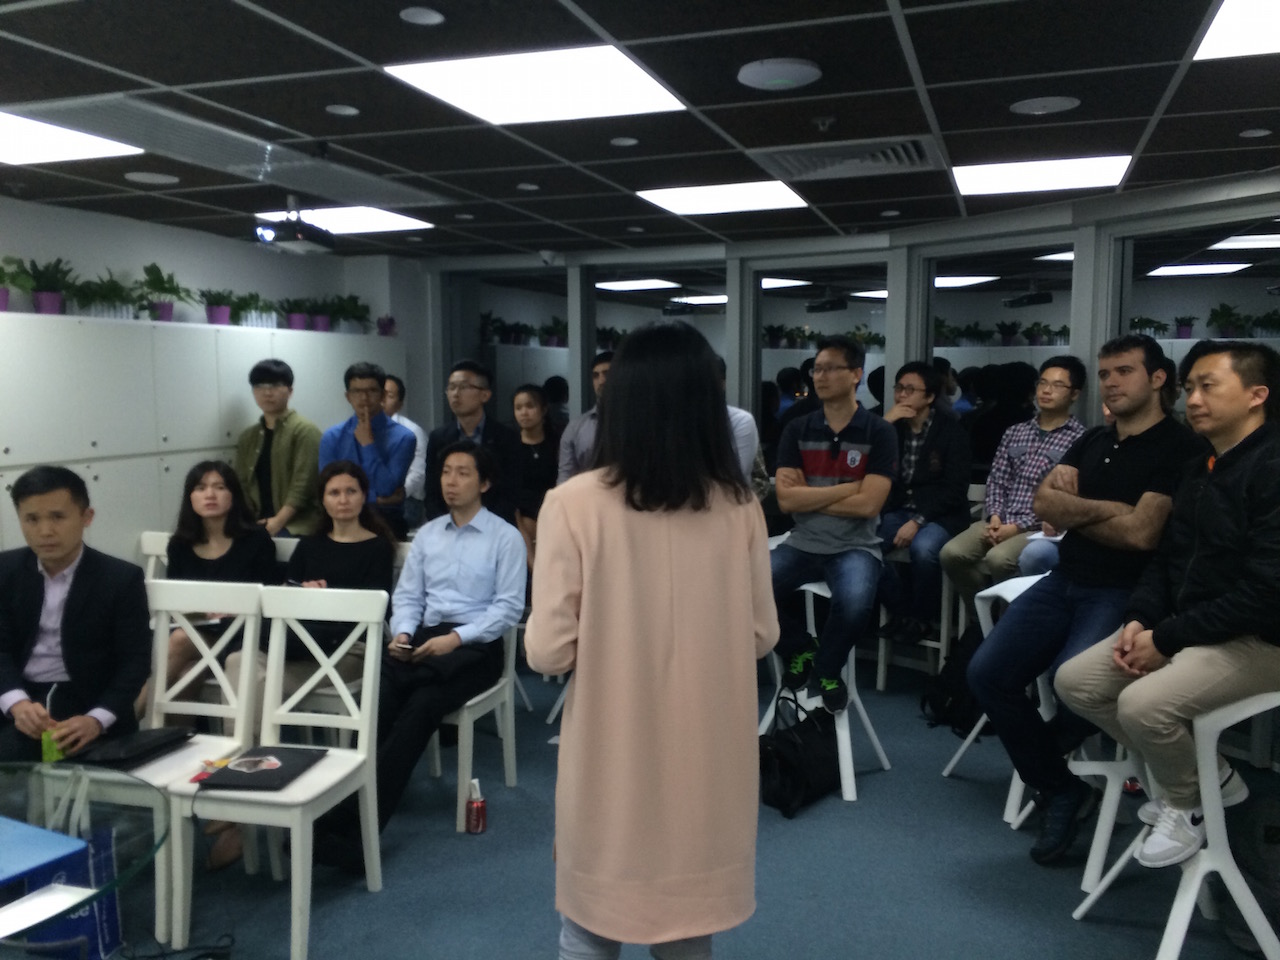 Speaker Series - Demystifying Mobile Marketing for Startups